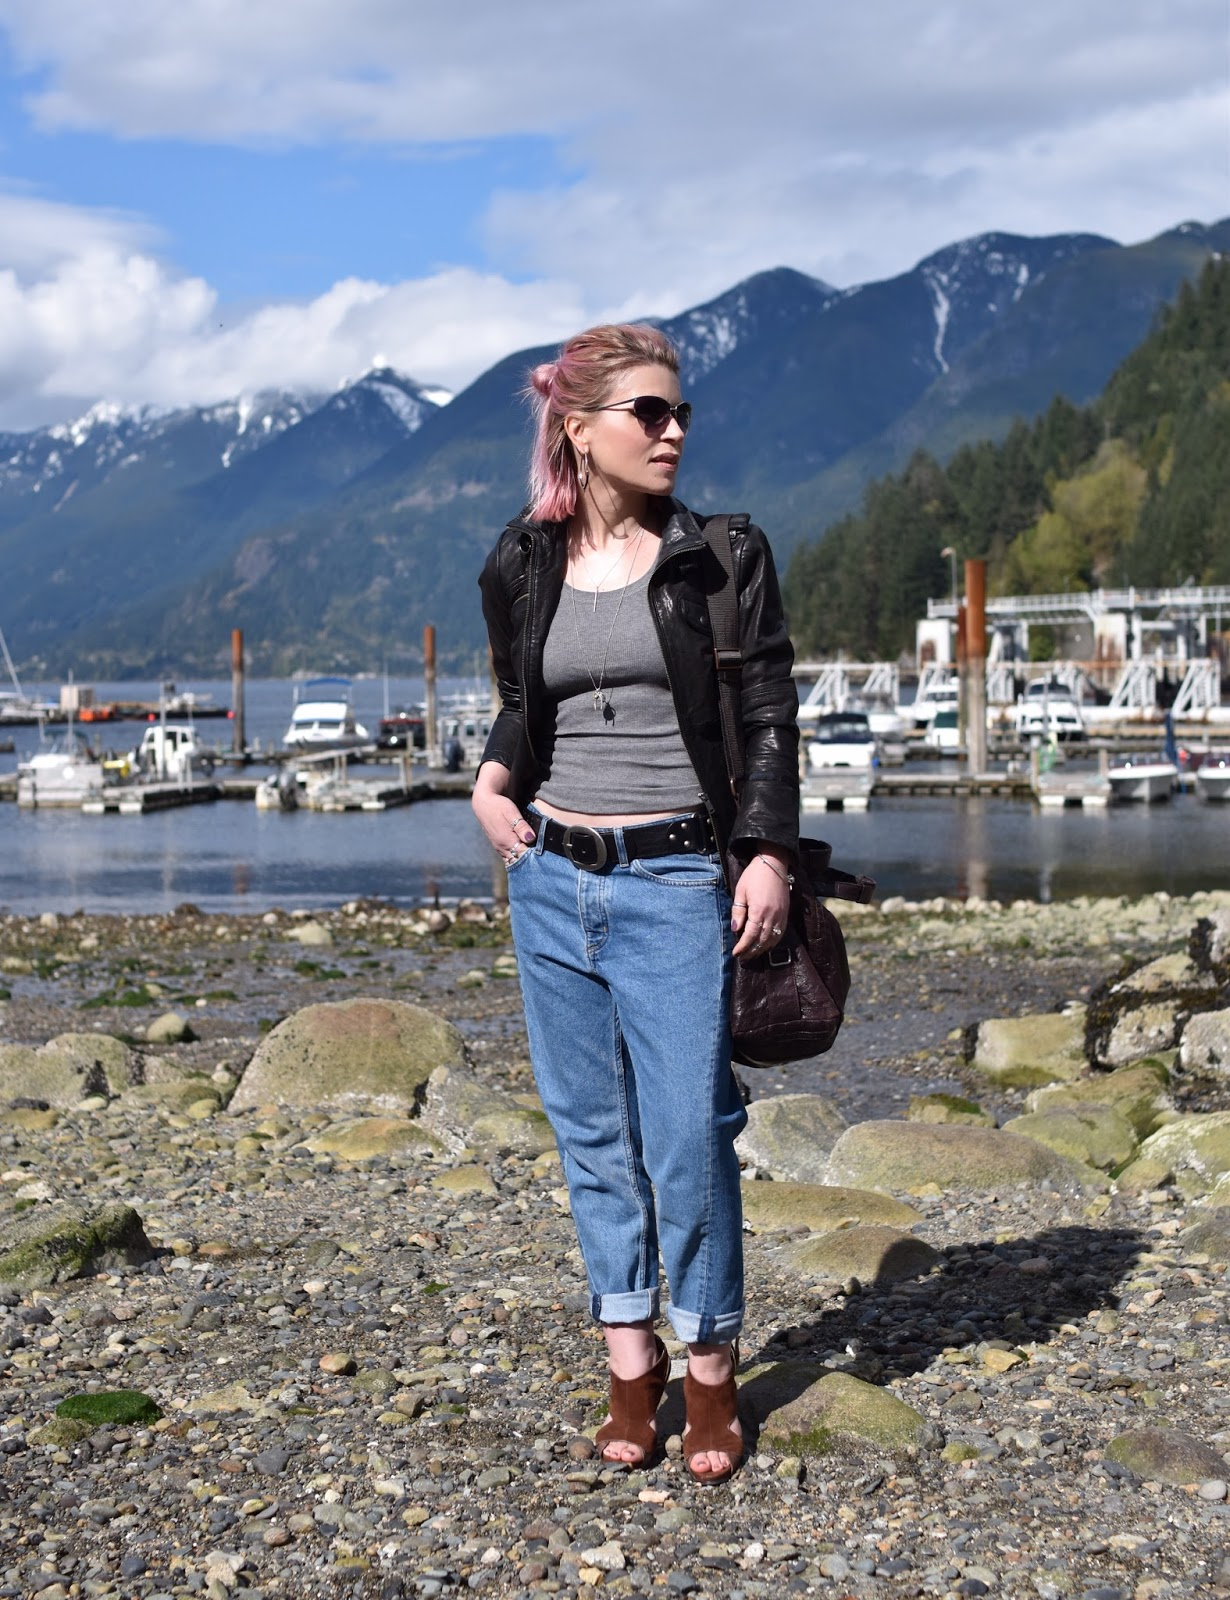 Monika Faulkner outfit inspiration - styling slouchy reworked jeans with a tank, moto jacket, and suede open-toe shoes